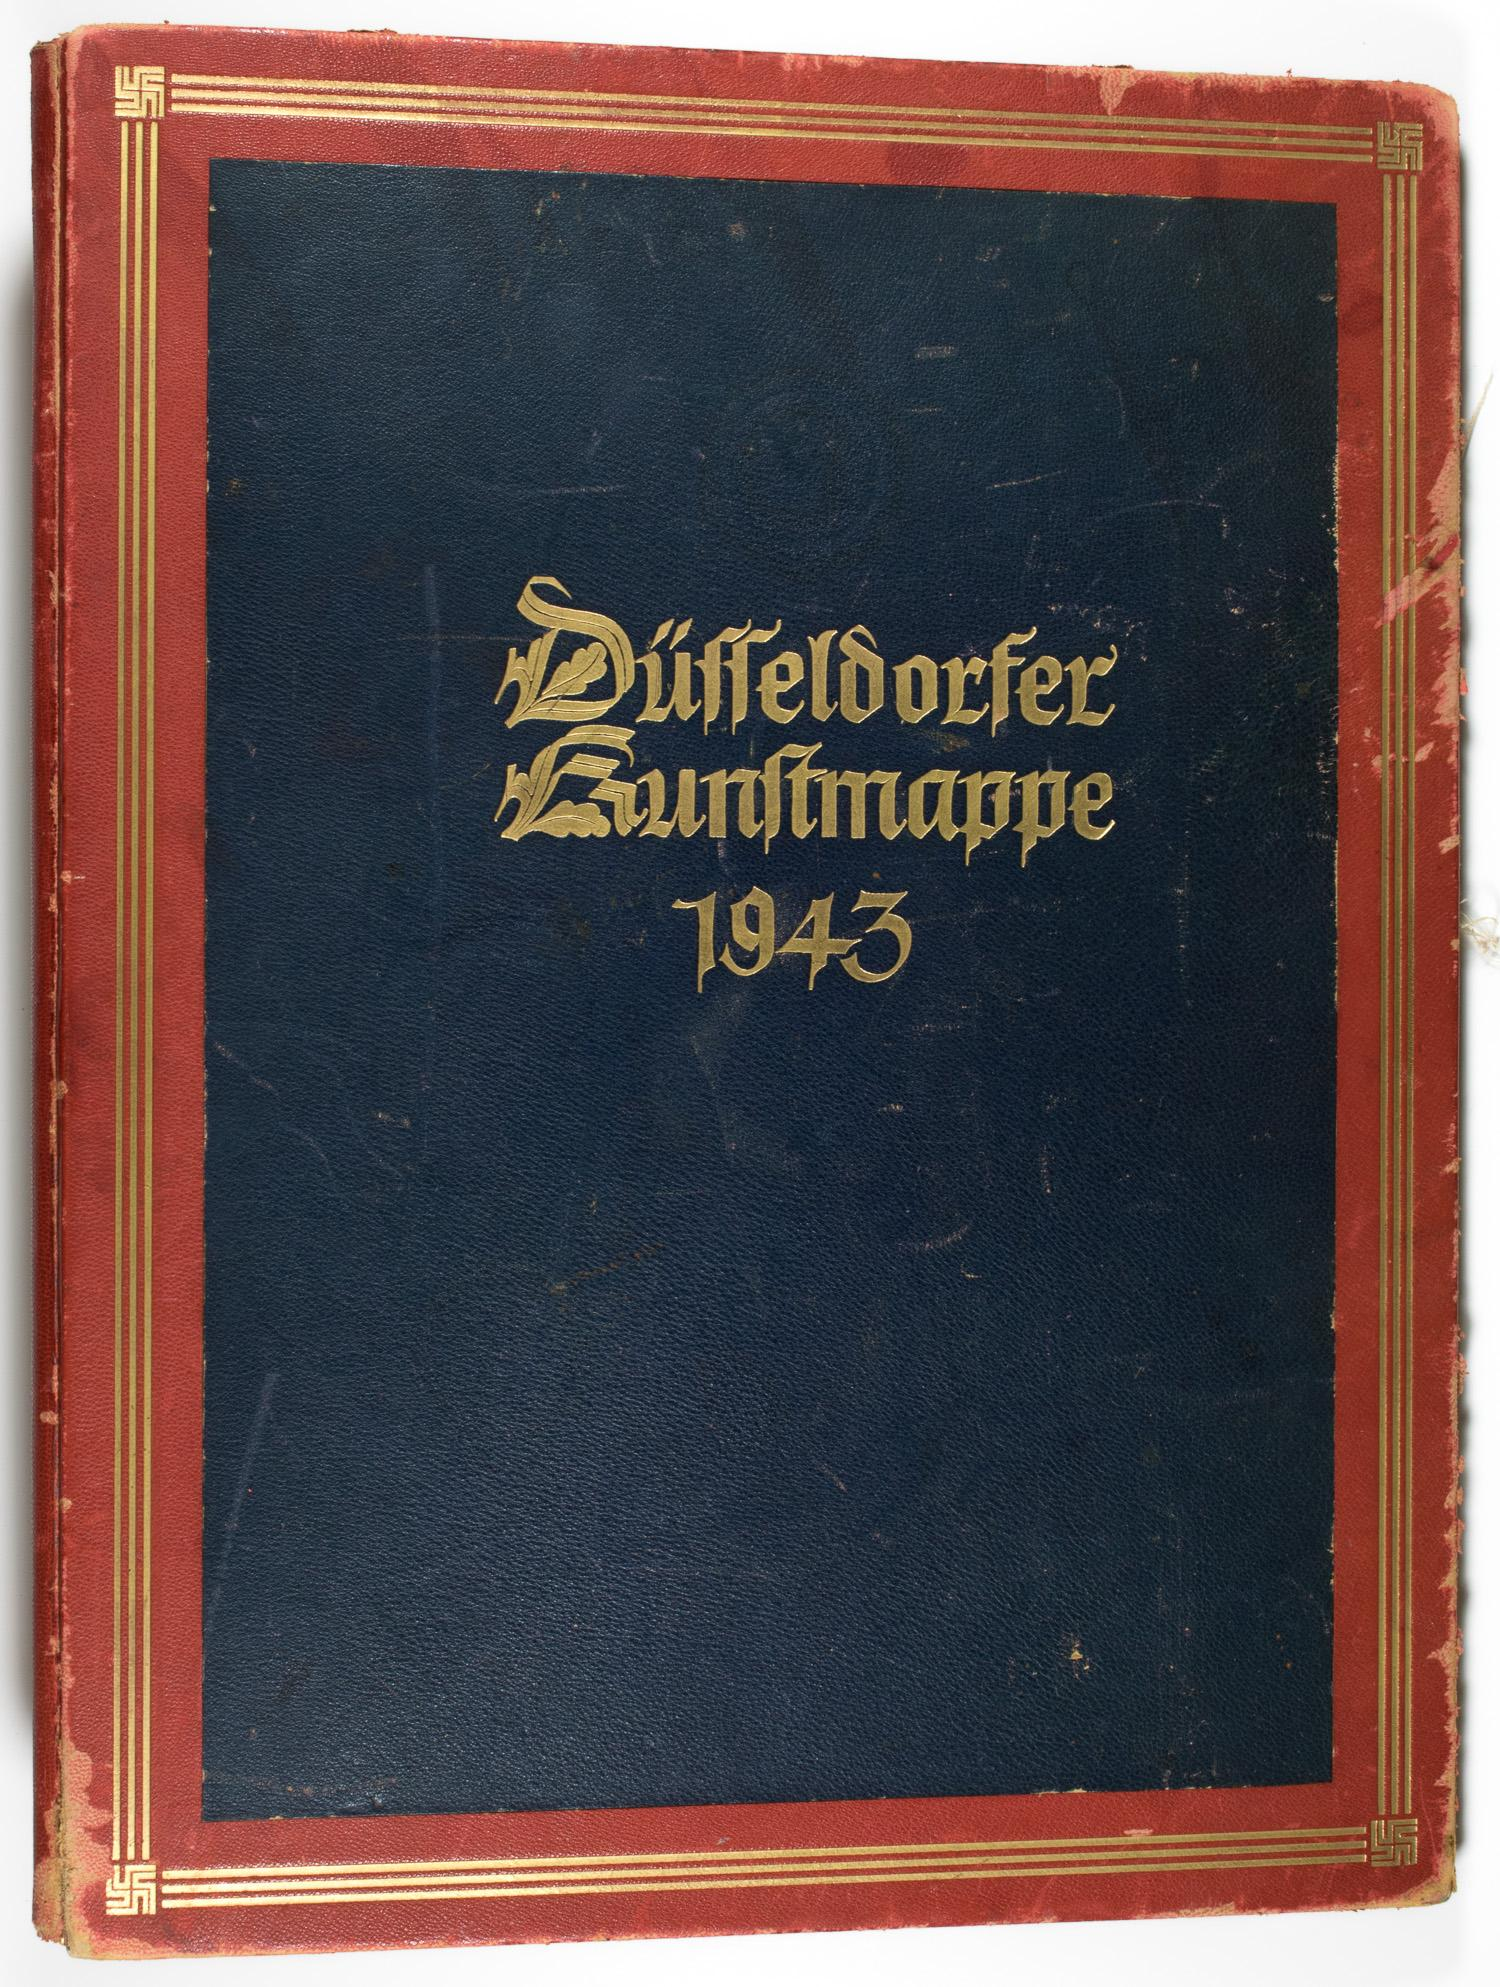 ADOLF HITLER'S PERSONAL CHRISTMAS GIFT FROM GAULEITER KARL FLORIAN